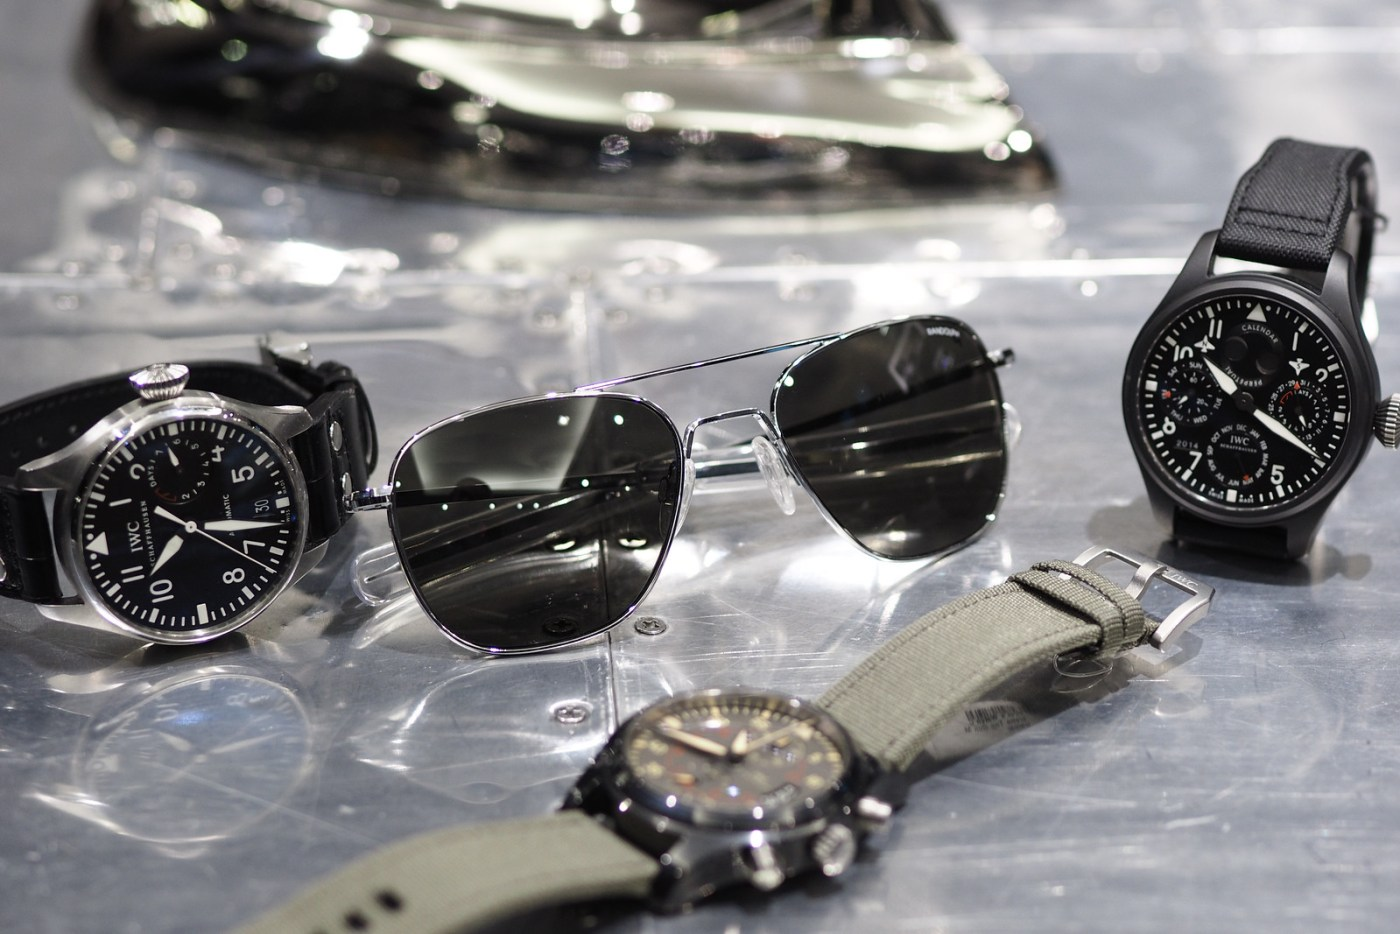 Randolph Aviation HGU-4-P sunglasses and IWC-Pilot watches